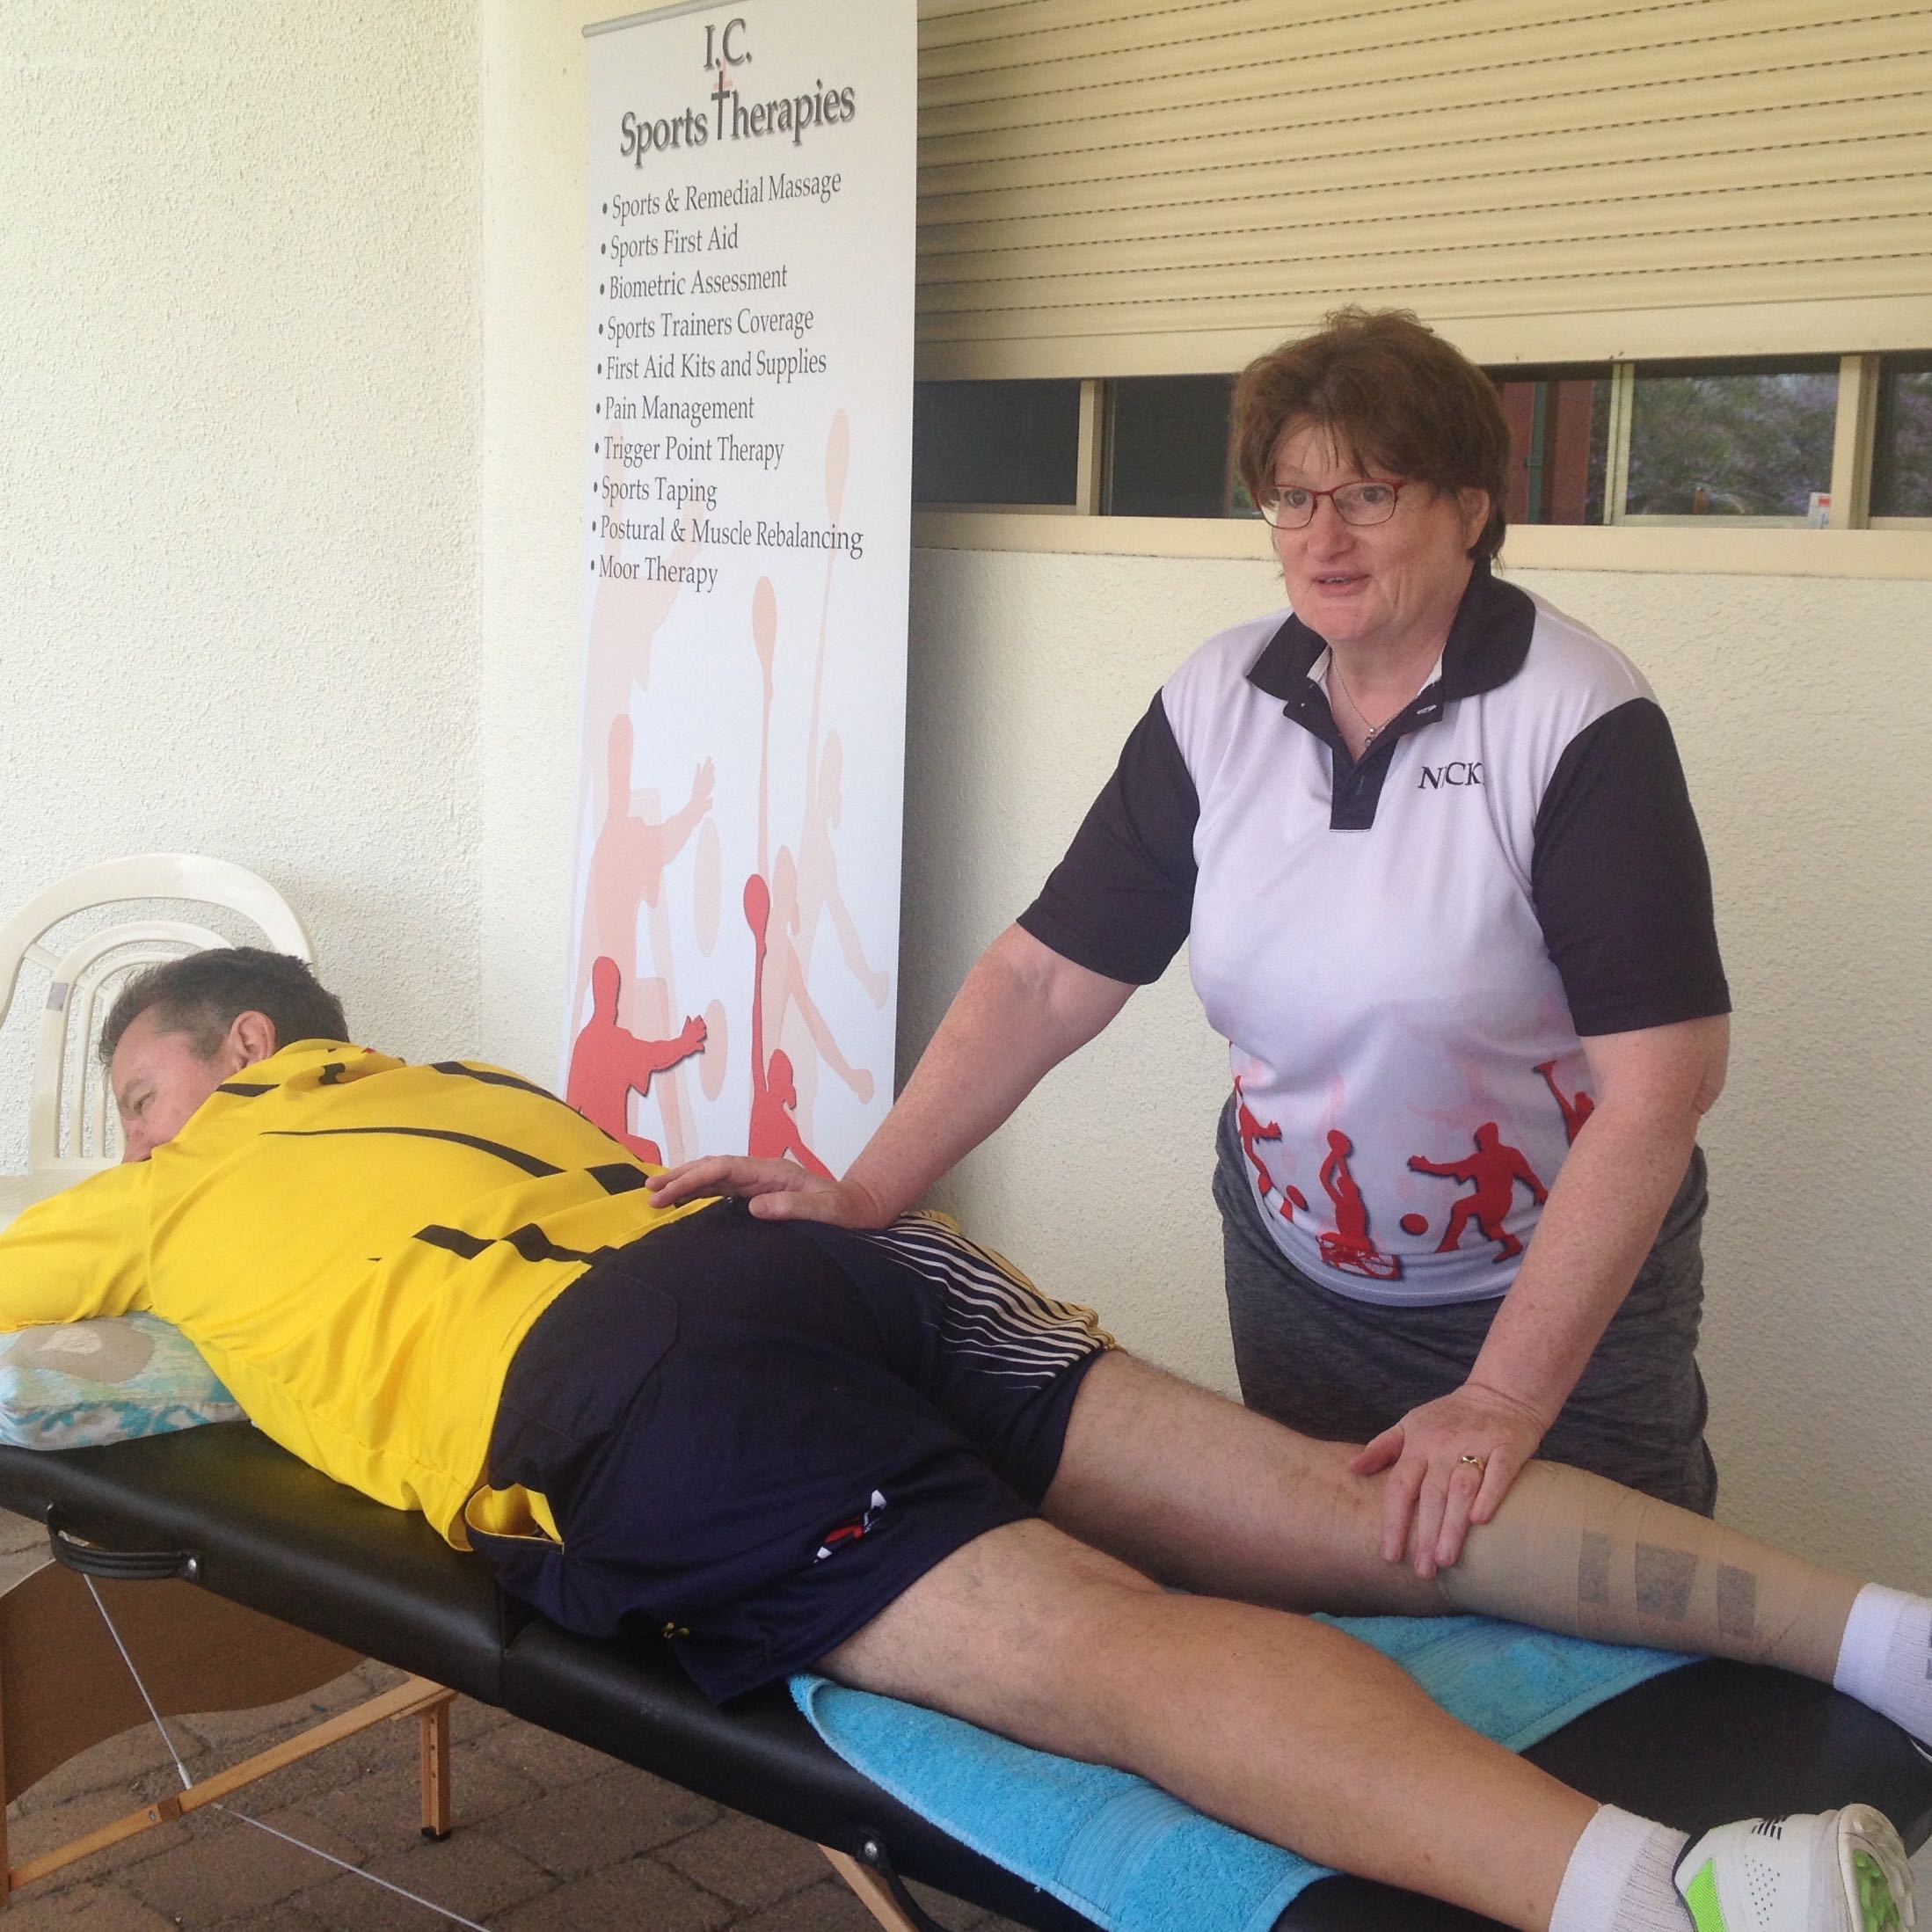 Nicki Cooke treating South African cricket team member